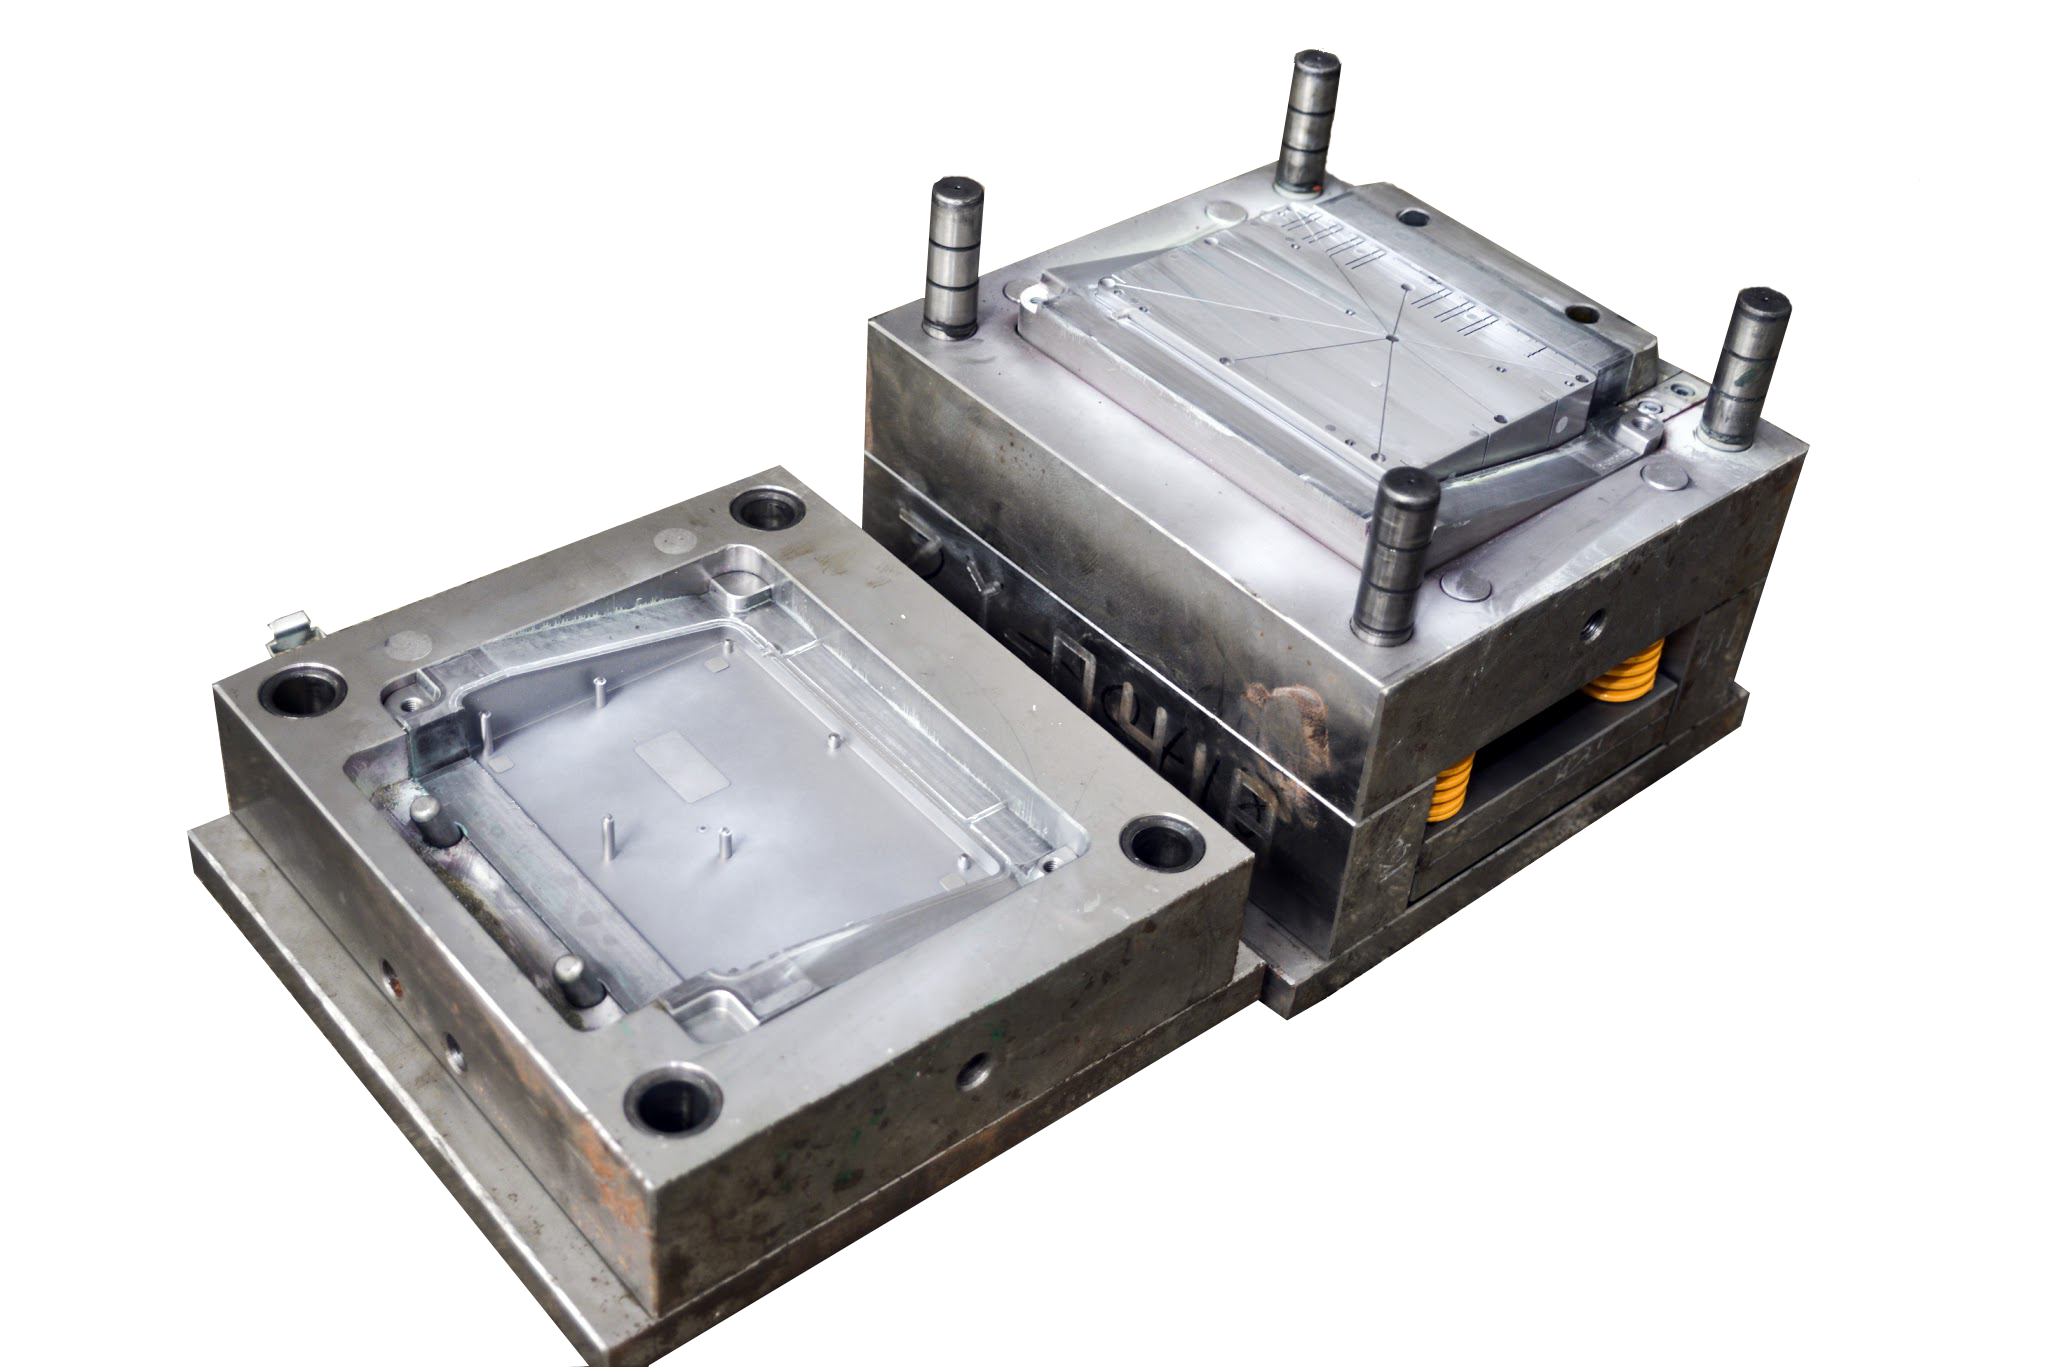 Plastic Injection Molding: A Guide on Using an Epoxy Mold